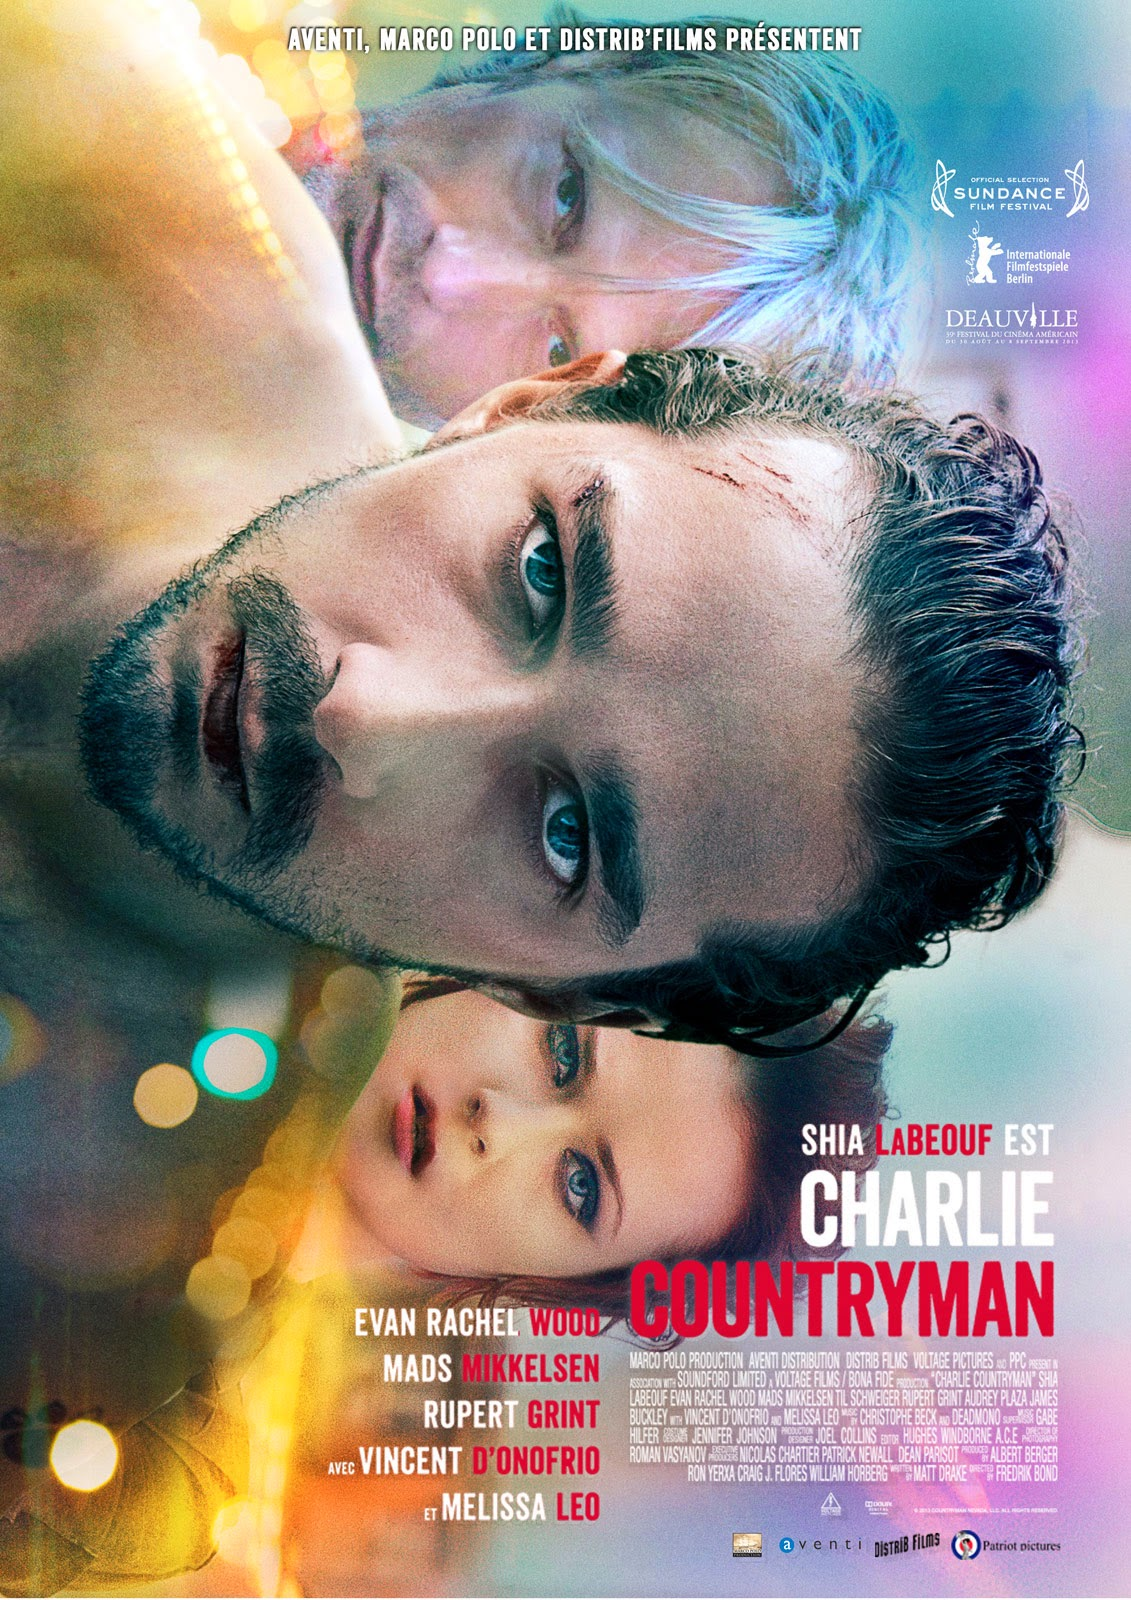 http://fuckingcinephiles.blogspot.fr/2014/05/critique-charlie-countryman.html